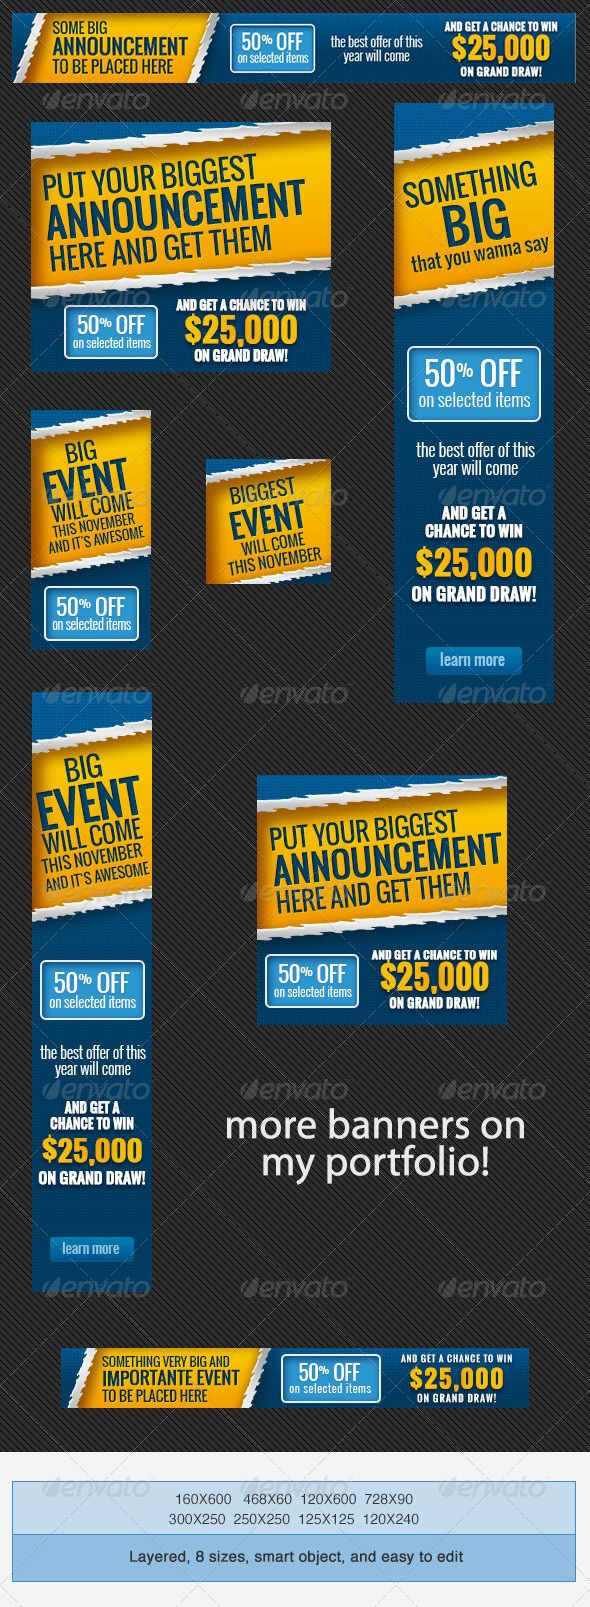 Pinbest Graphic Design On Web Banners Template Psd inside Event Banner Template